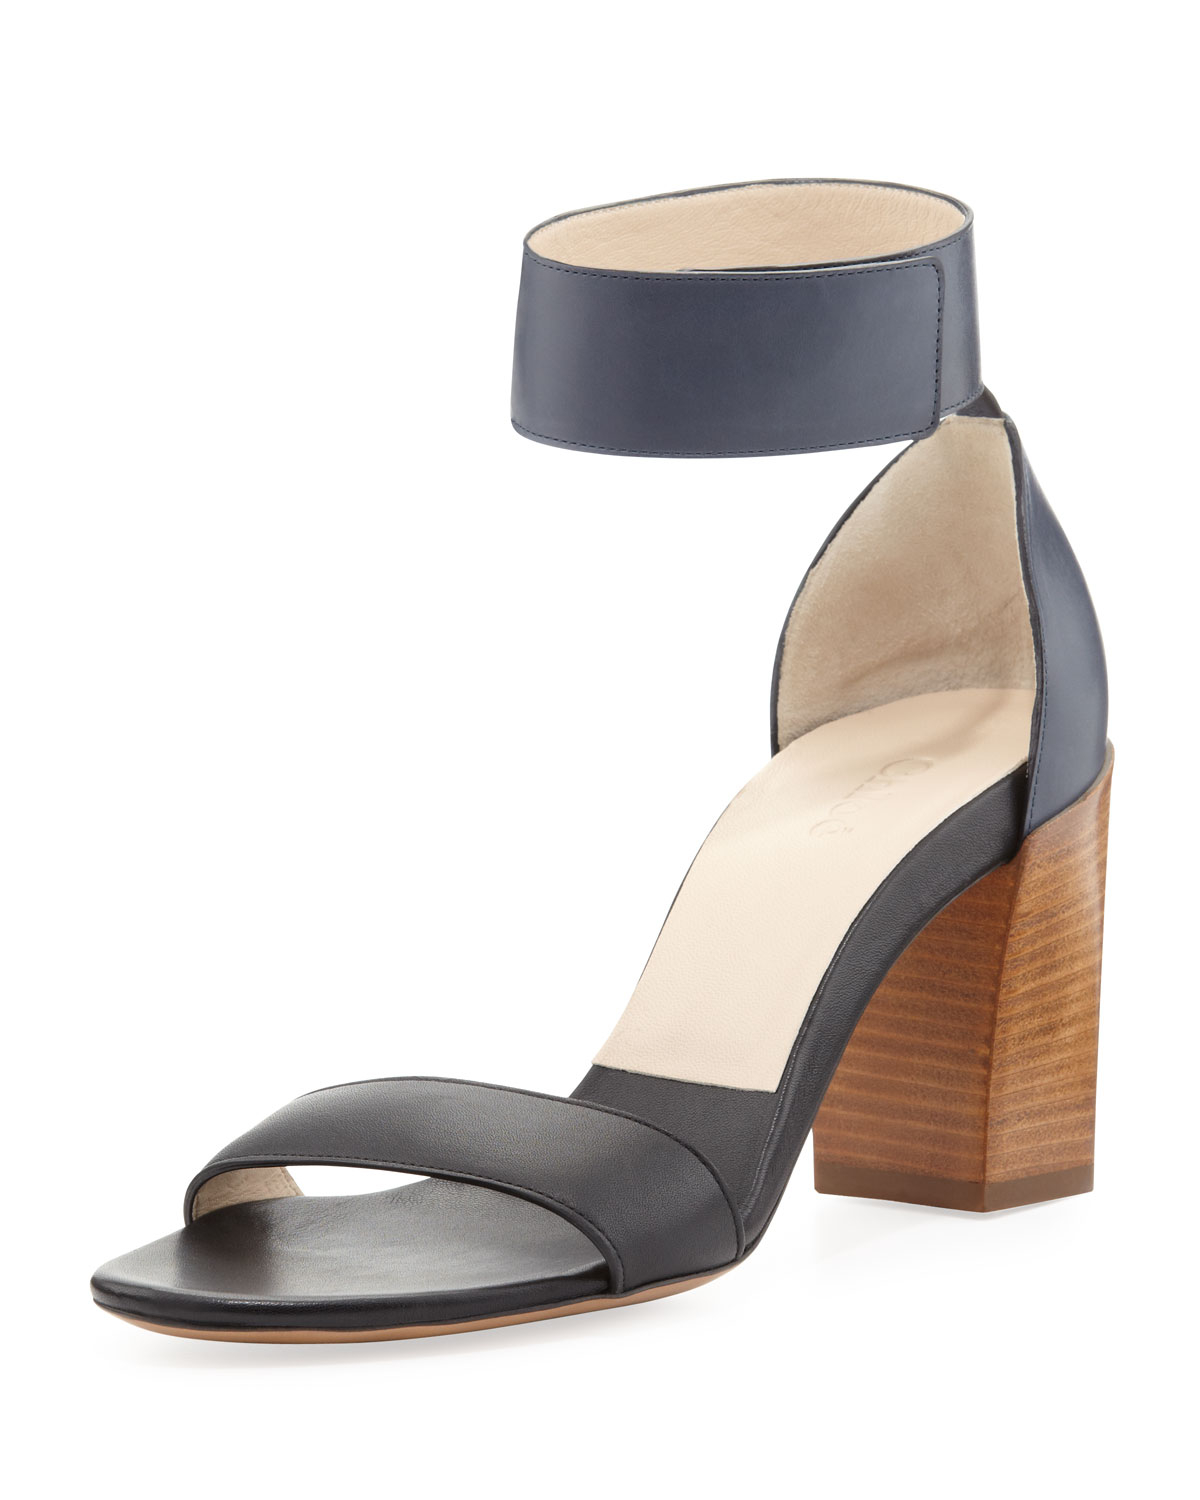 Lyst - Chloé Two-tone Ankle Strap Sandal in Black efd13a18bc5